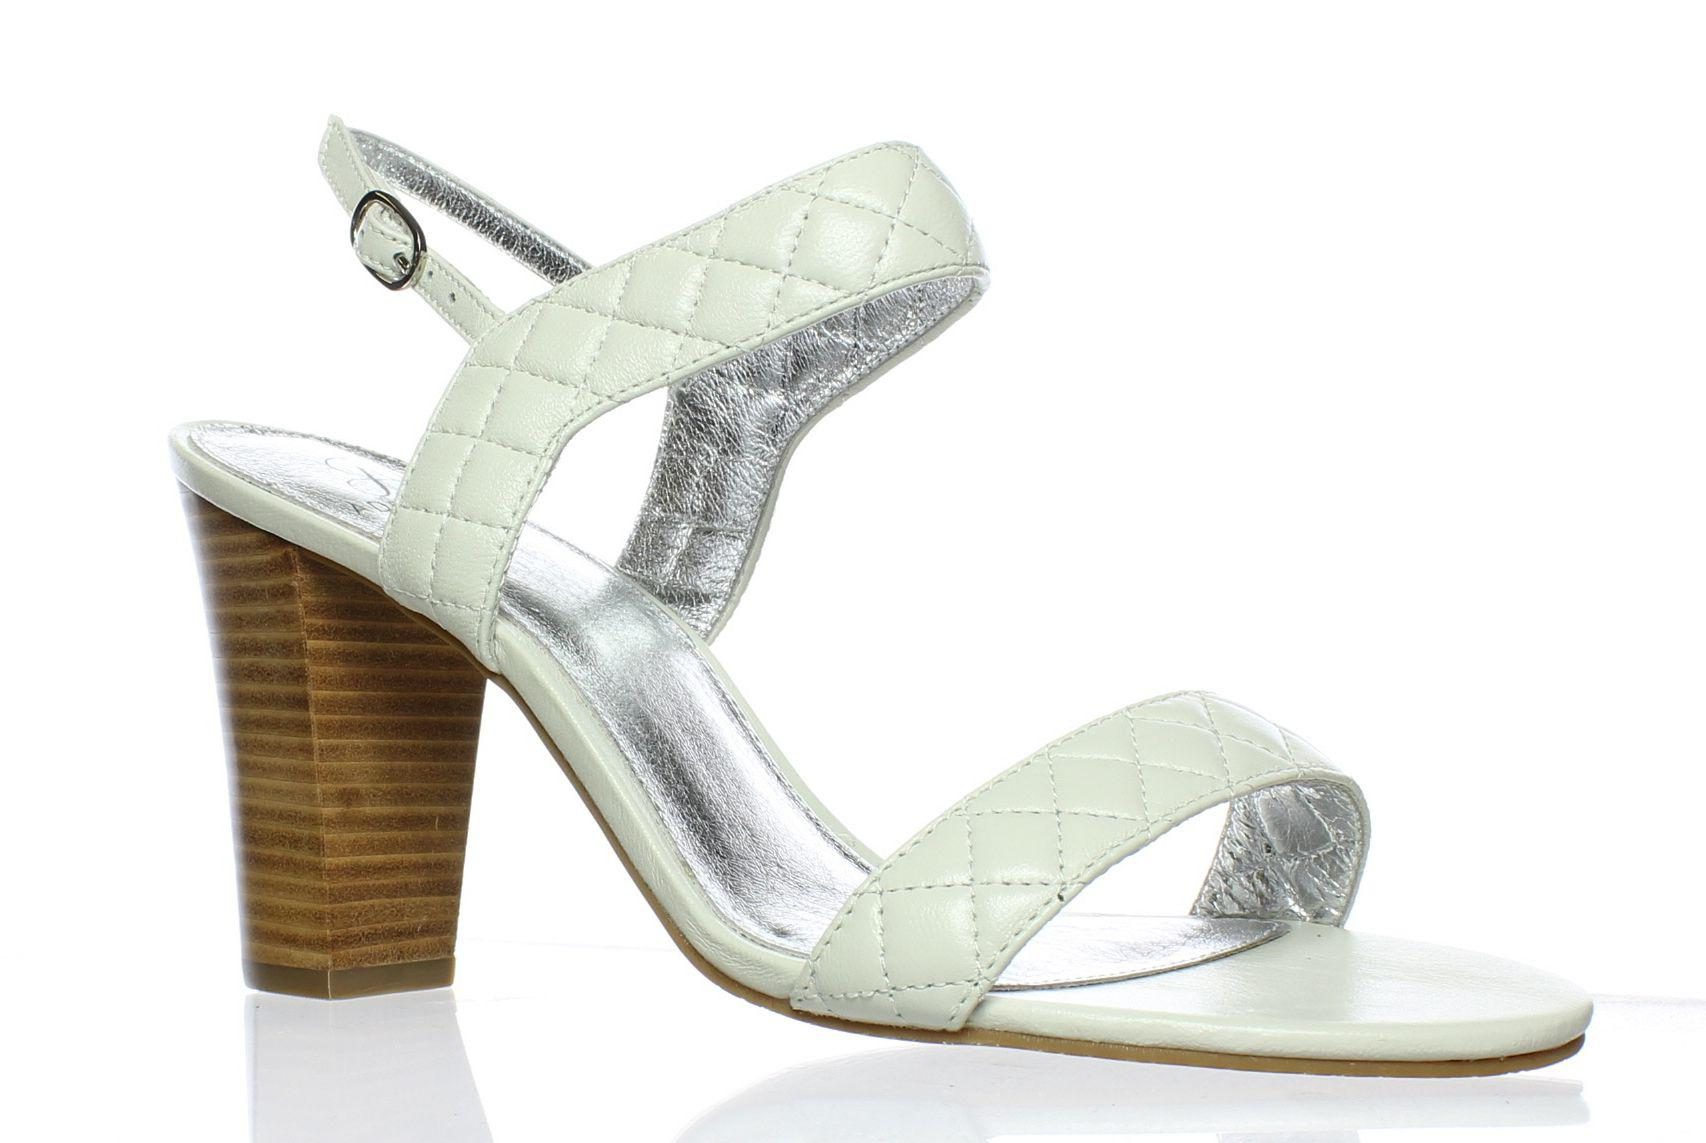 d48428a8b47 Lyst - Adrianna Papell Womens Astor Vanilla Ankle Strap Heels